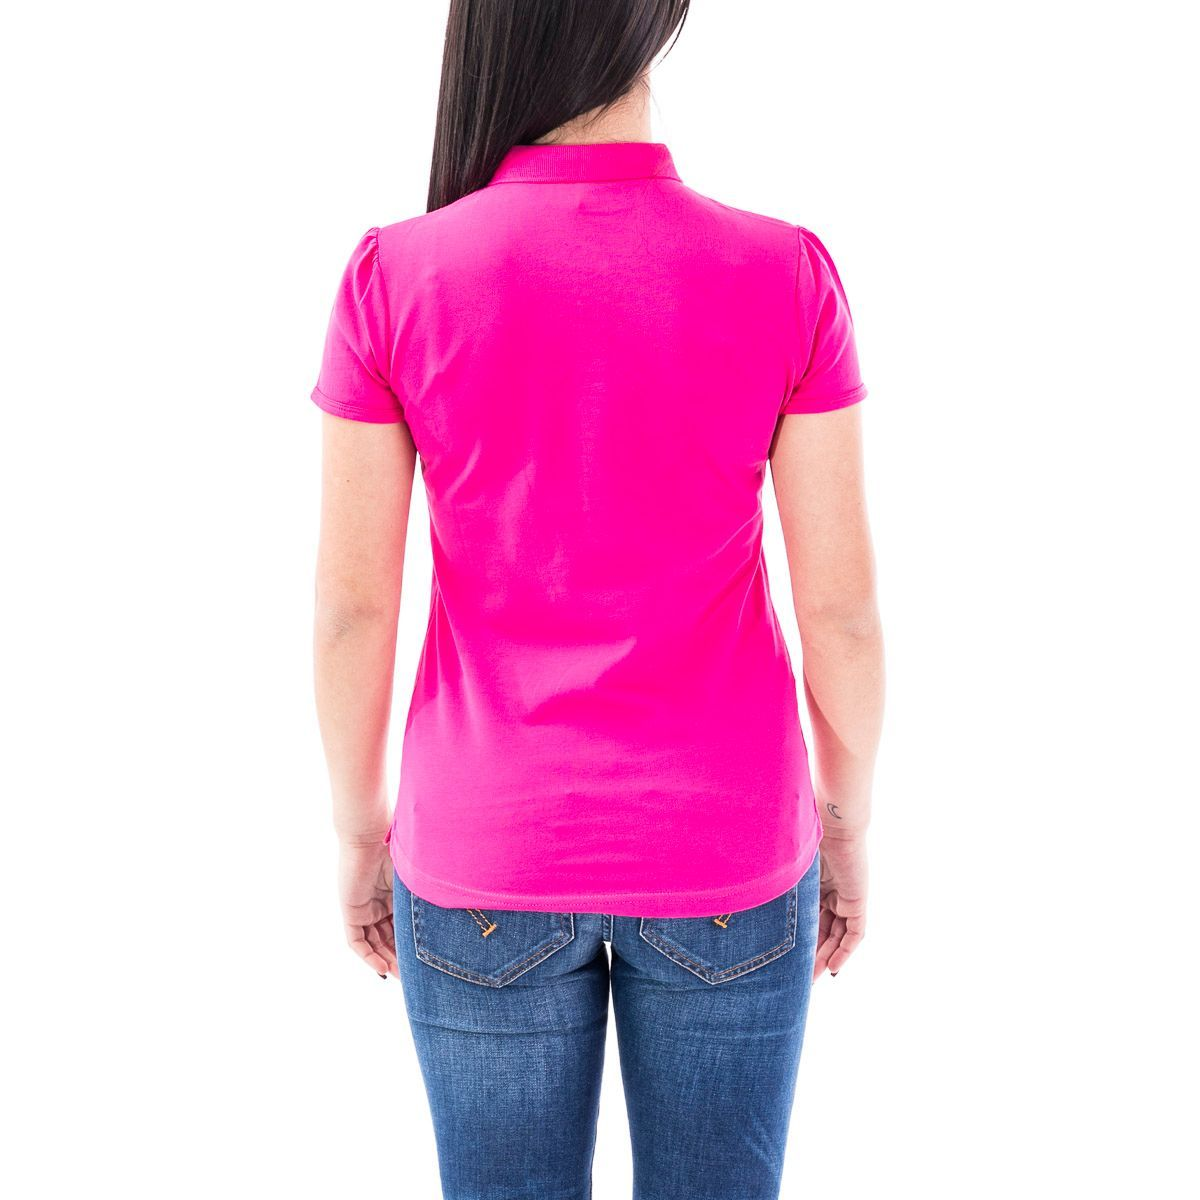 SUN 68 WOMEN'S A3020220 FUCHSIA COTTON POLO SHIRT